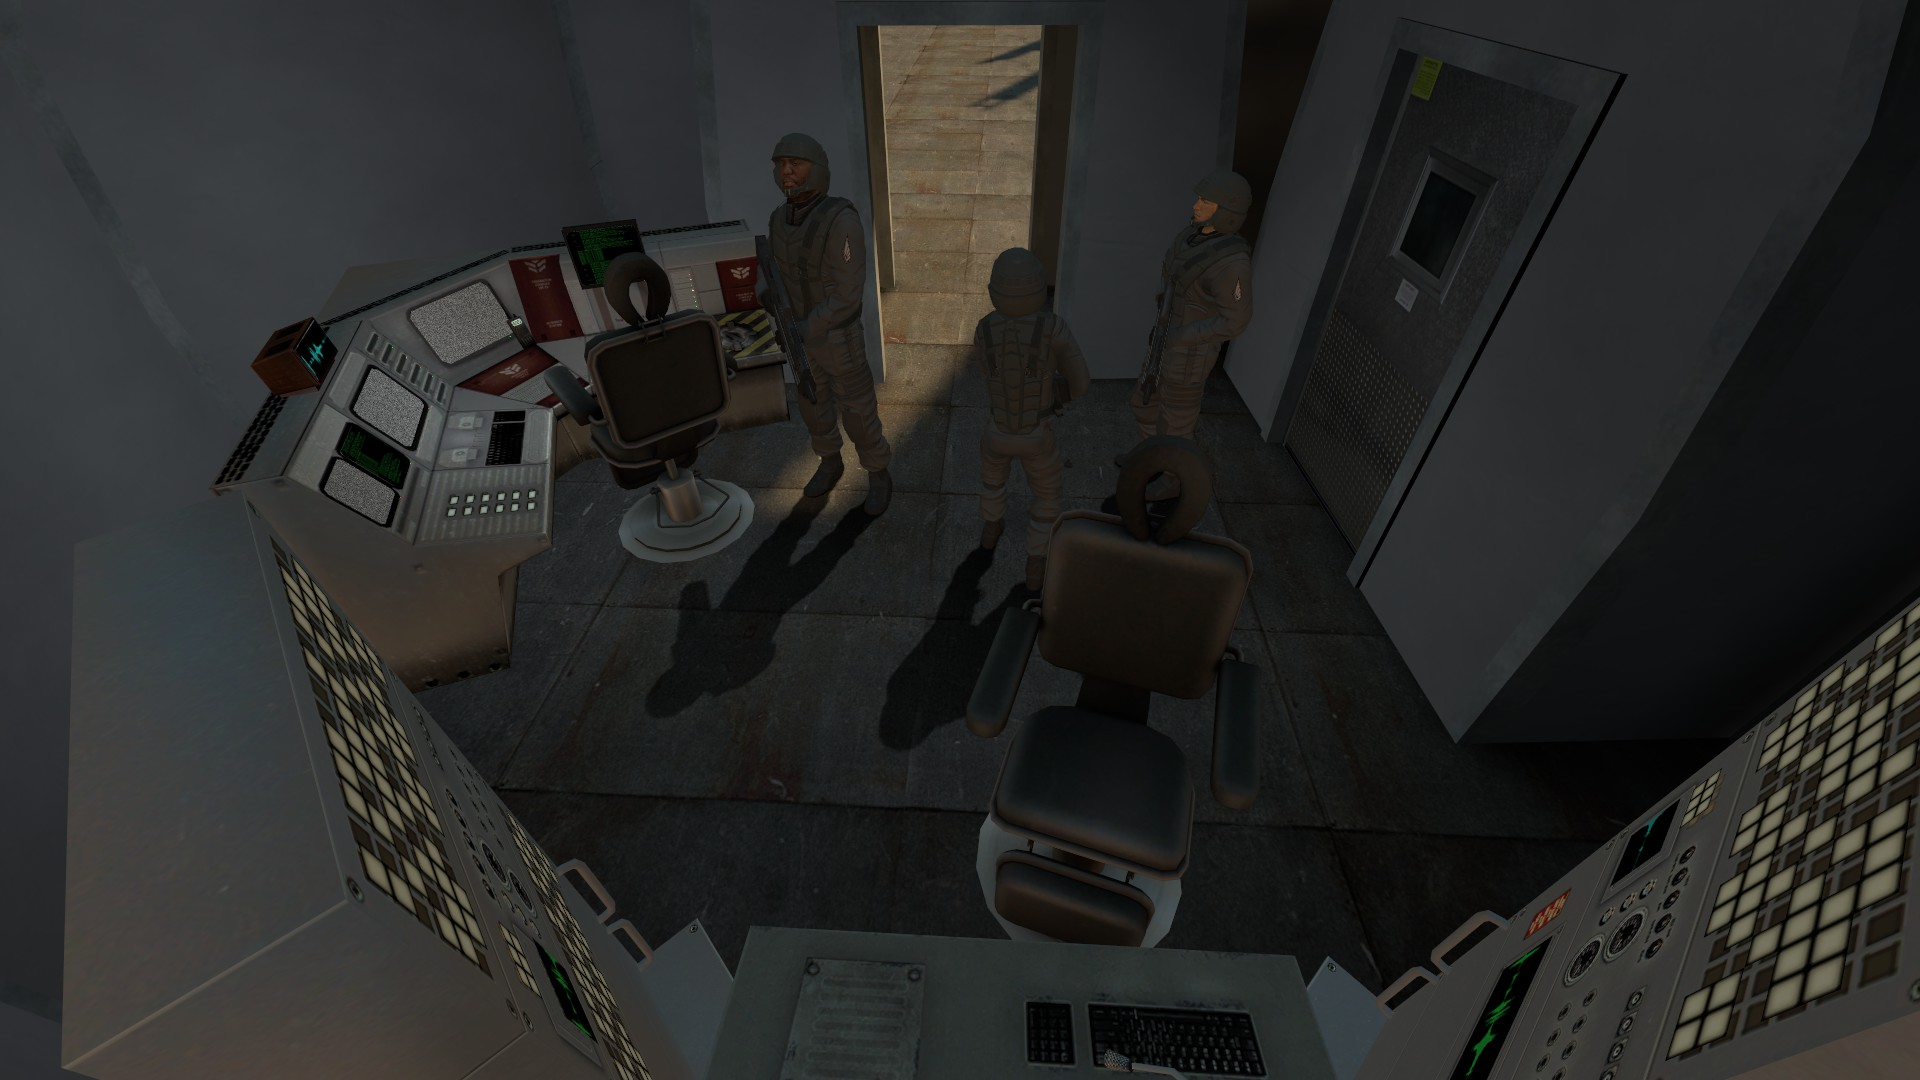 Comm Room Image L4d2 Starship Troopers Mod For Left 4